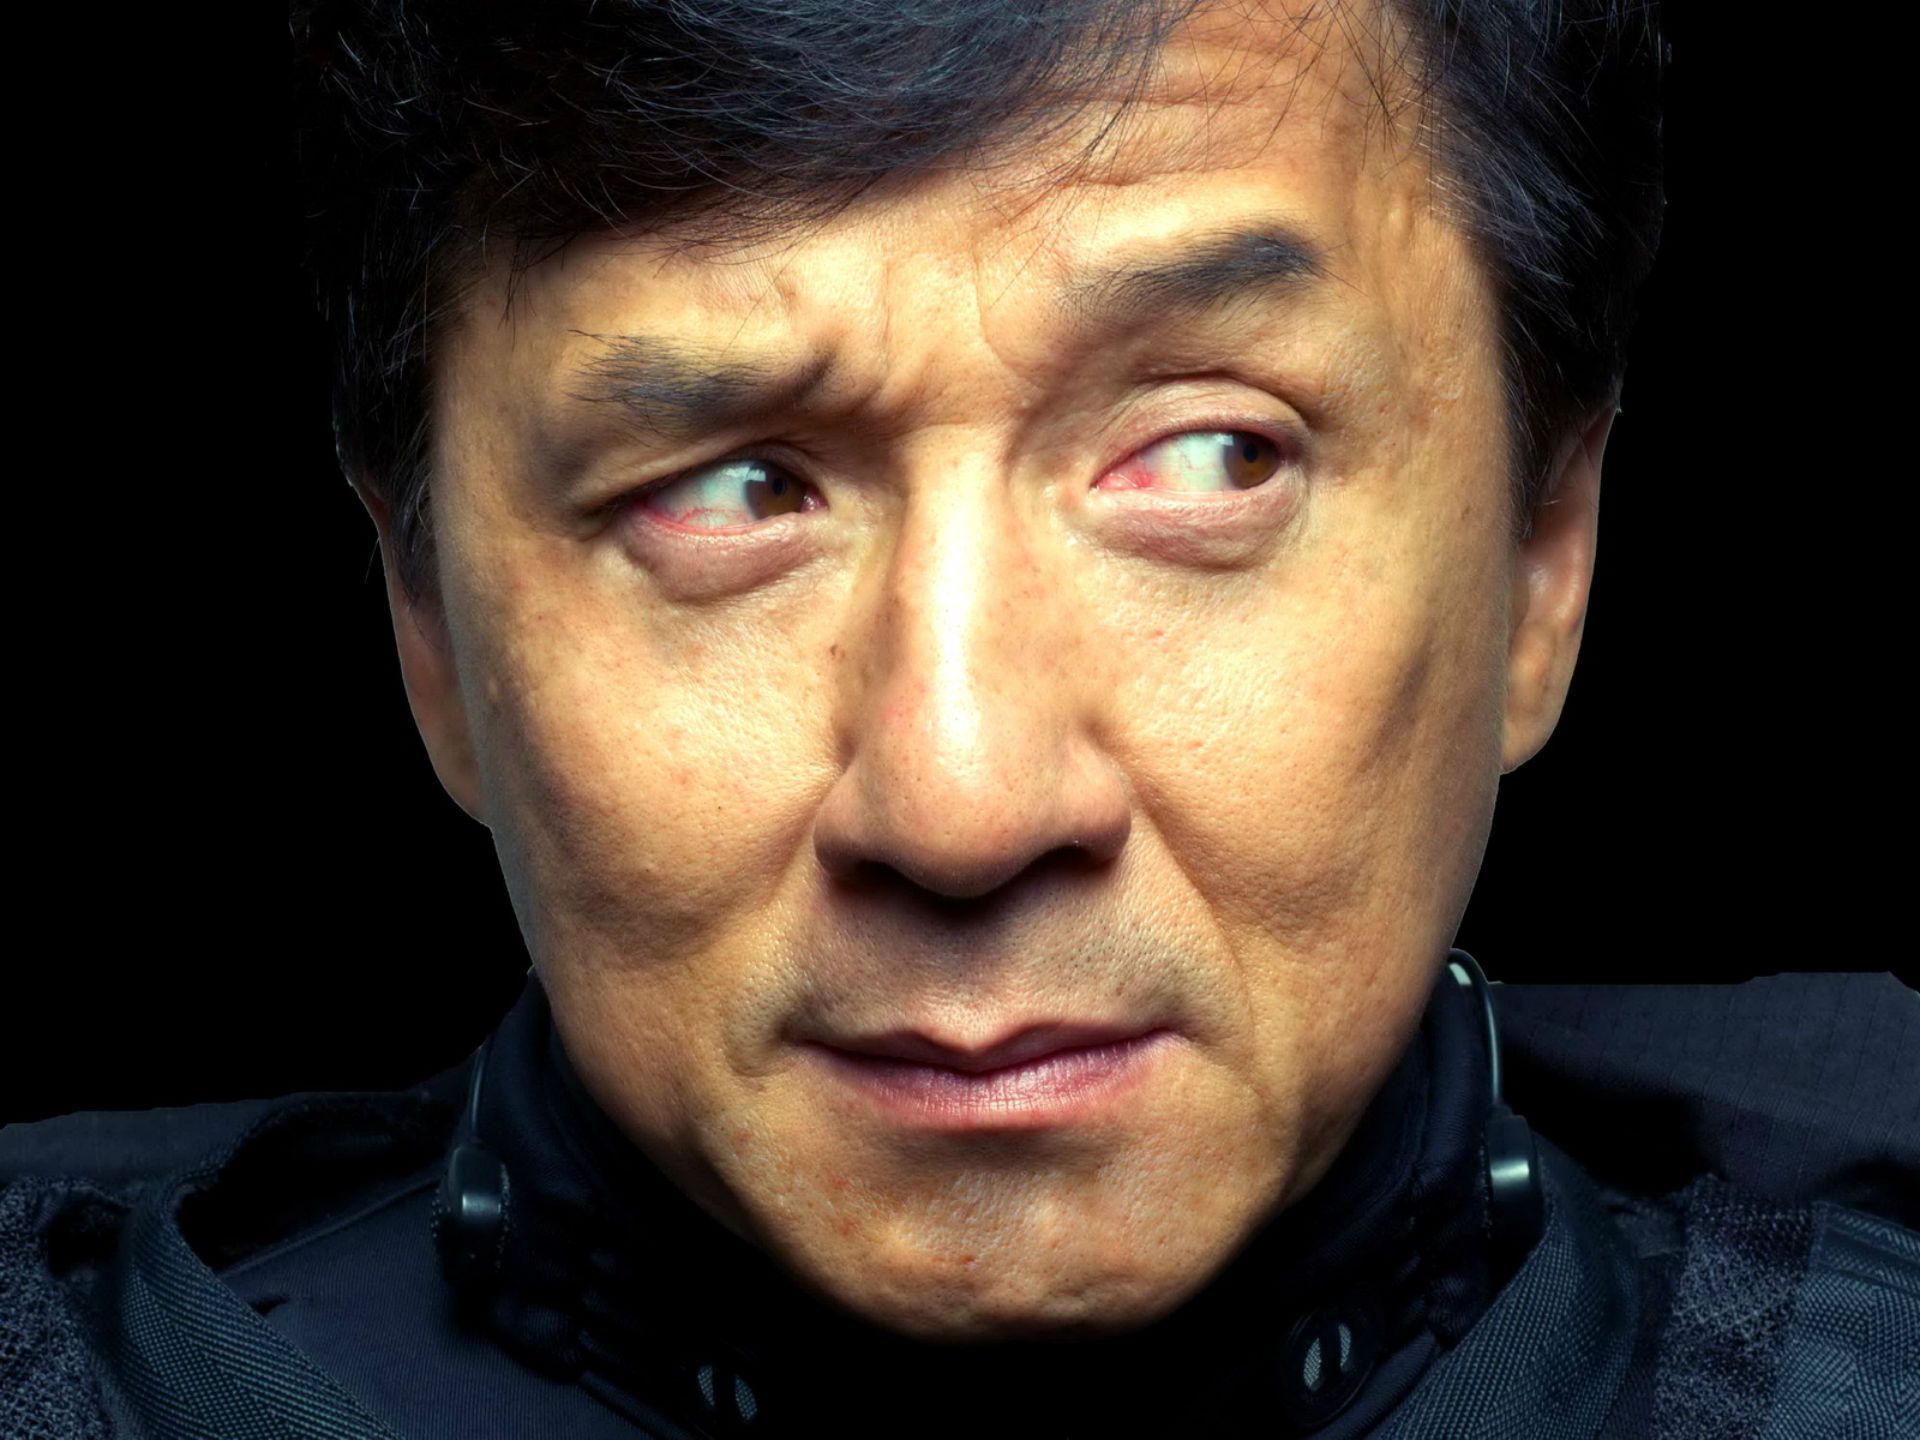 Jackie Chan Comedy Actor Wallpaper - http://www.gbwallpapers.com ...